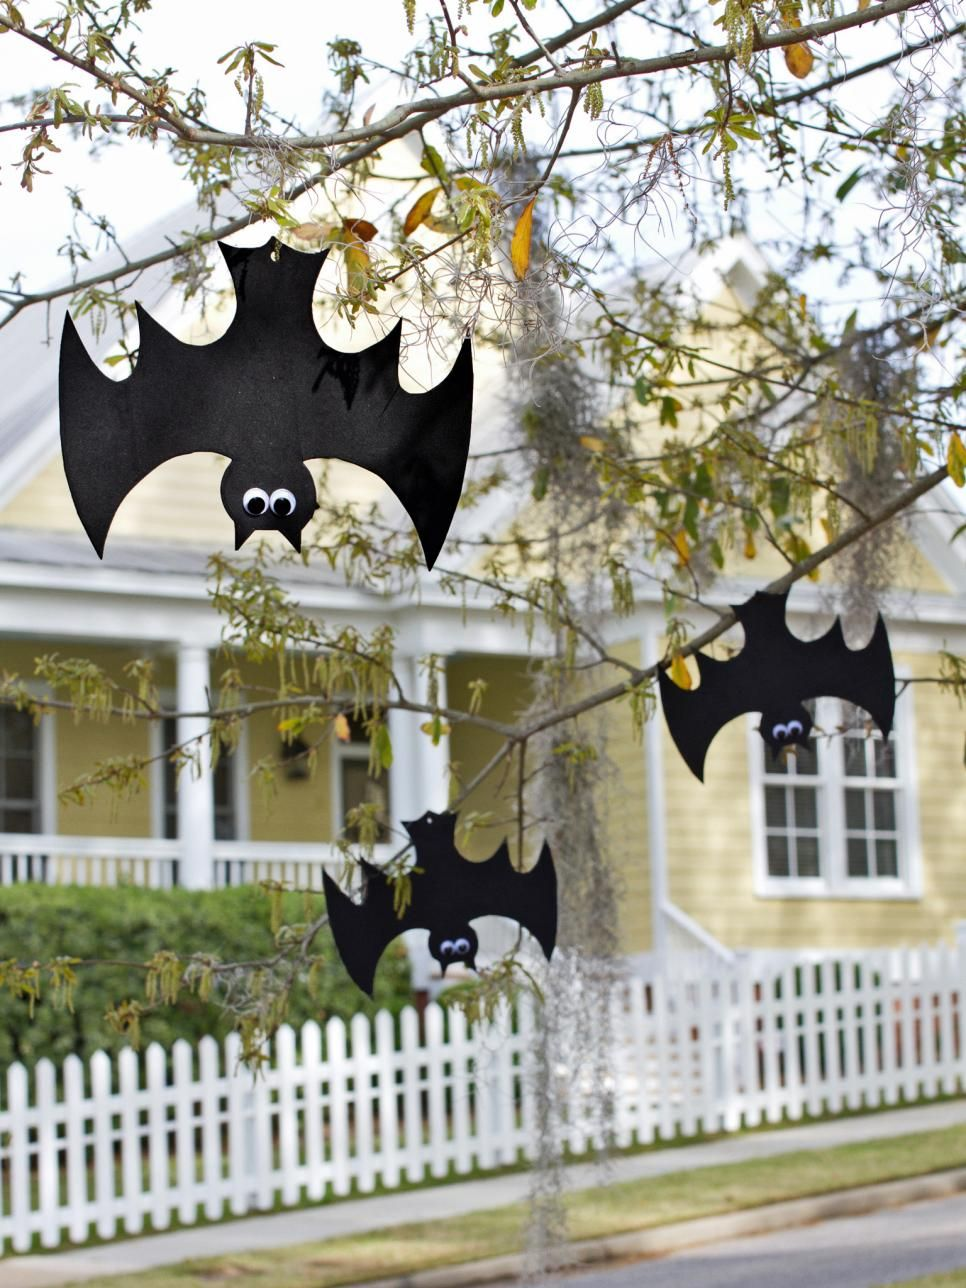 35+ Halloween Party Ideas Pinterest Handmade decorations - Inexpensive Halloween Decorations